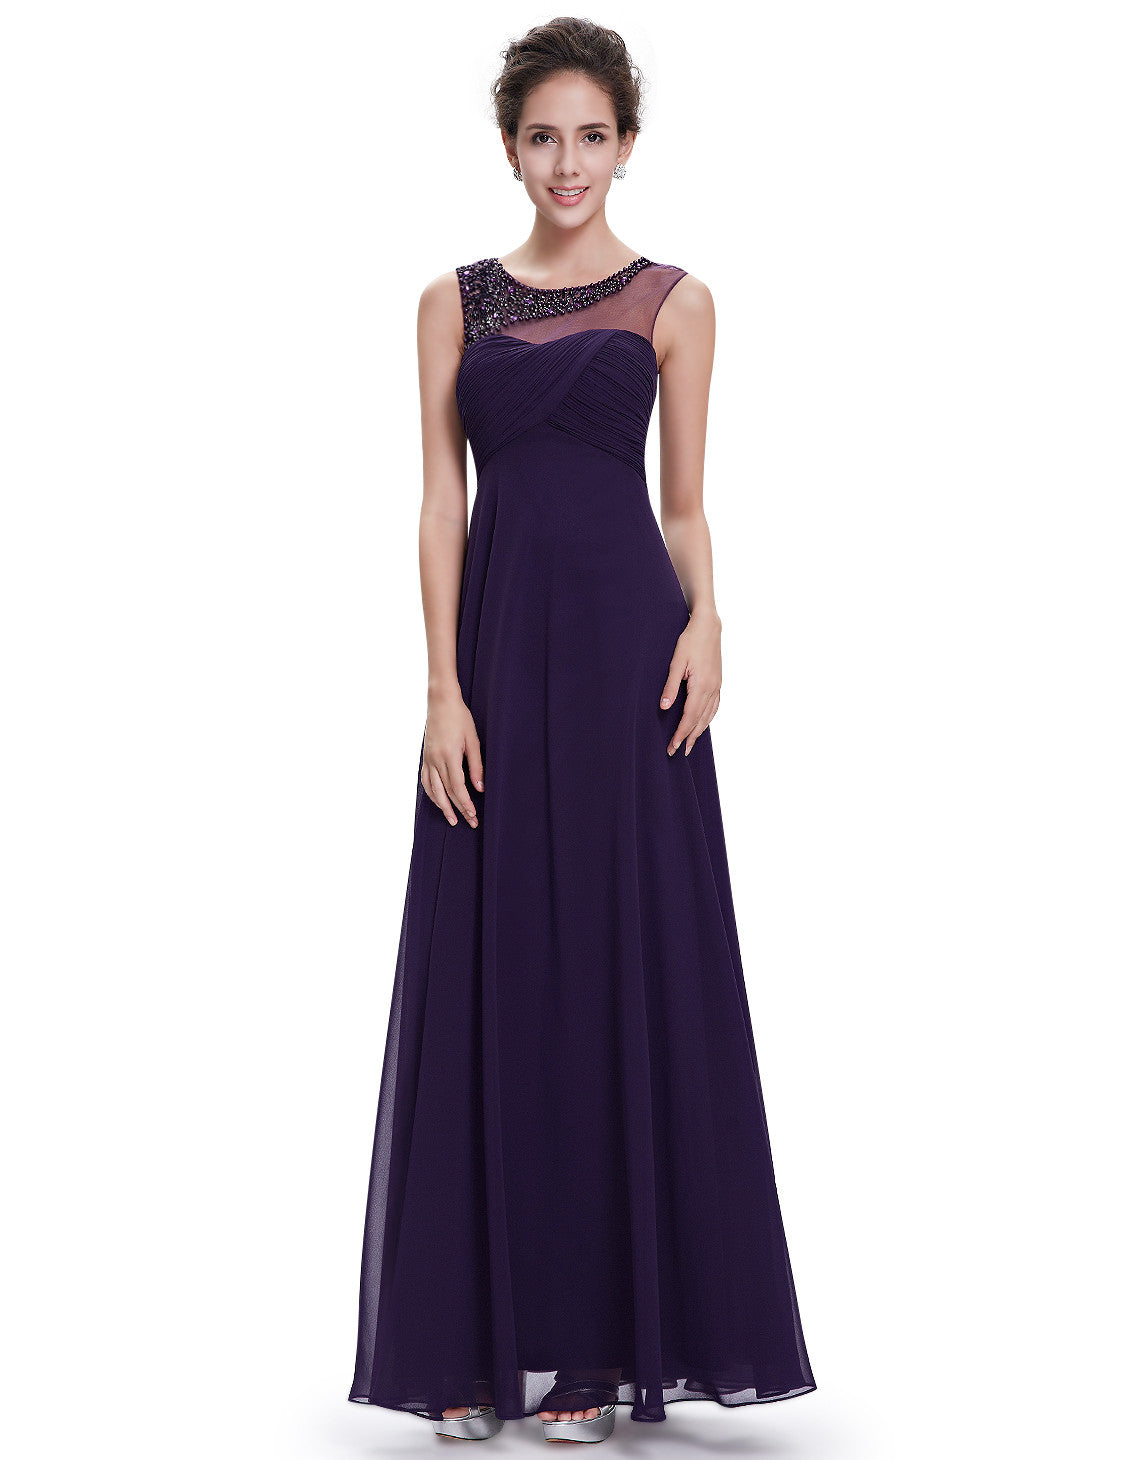 Elegant Round Neck Long Party Purple Evening Dress - O'beige